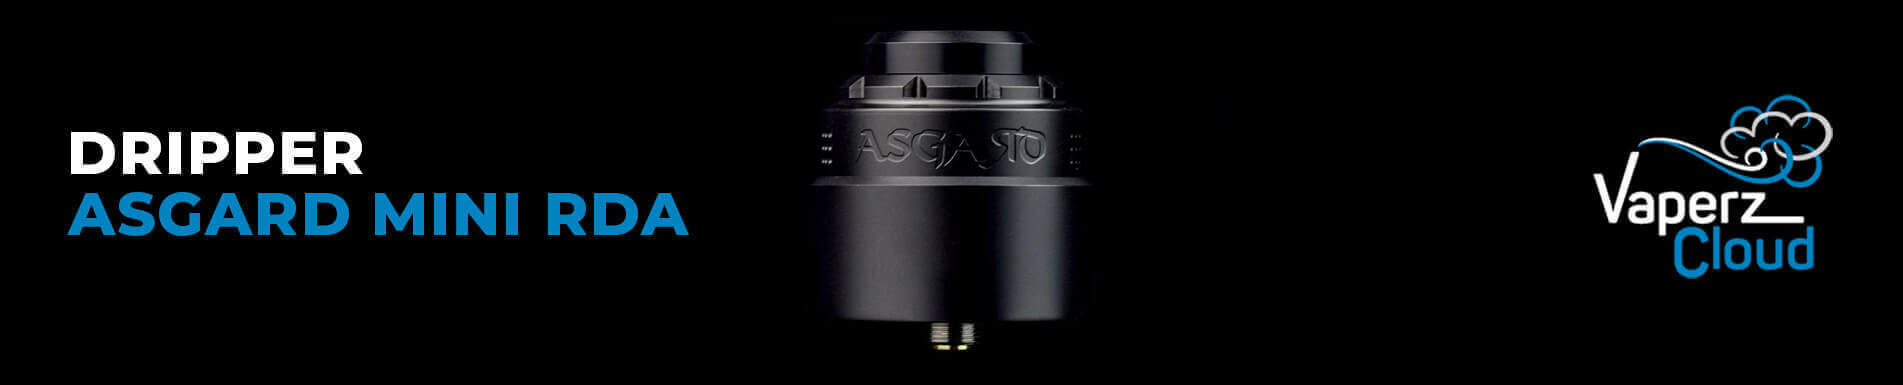 Dripper Asgard Mini RDA par Vaperz Cloud